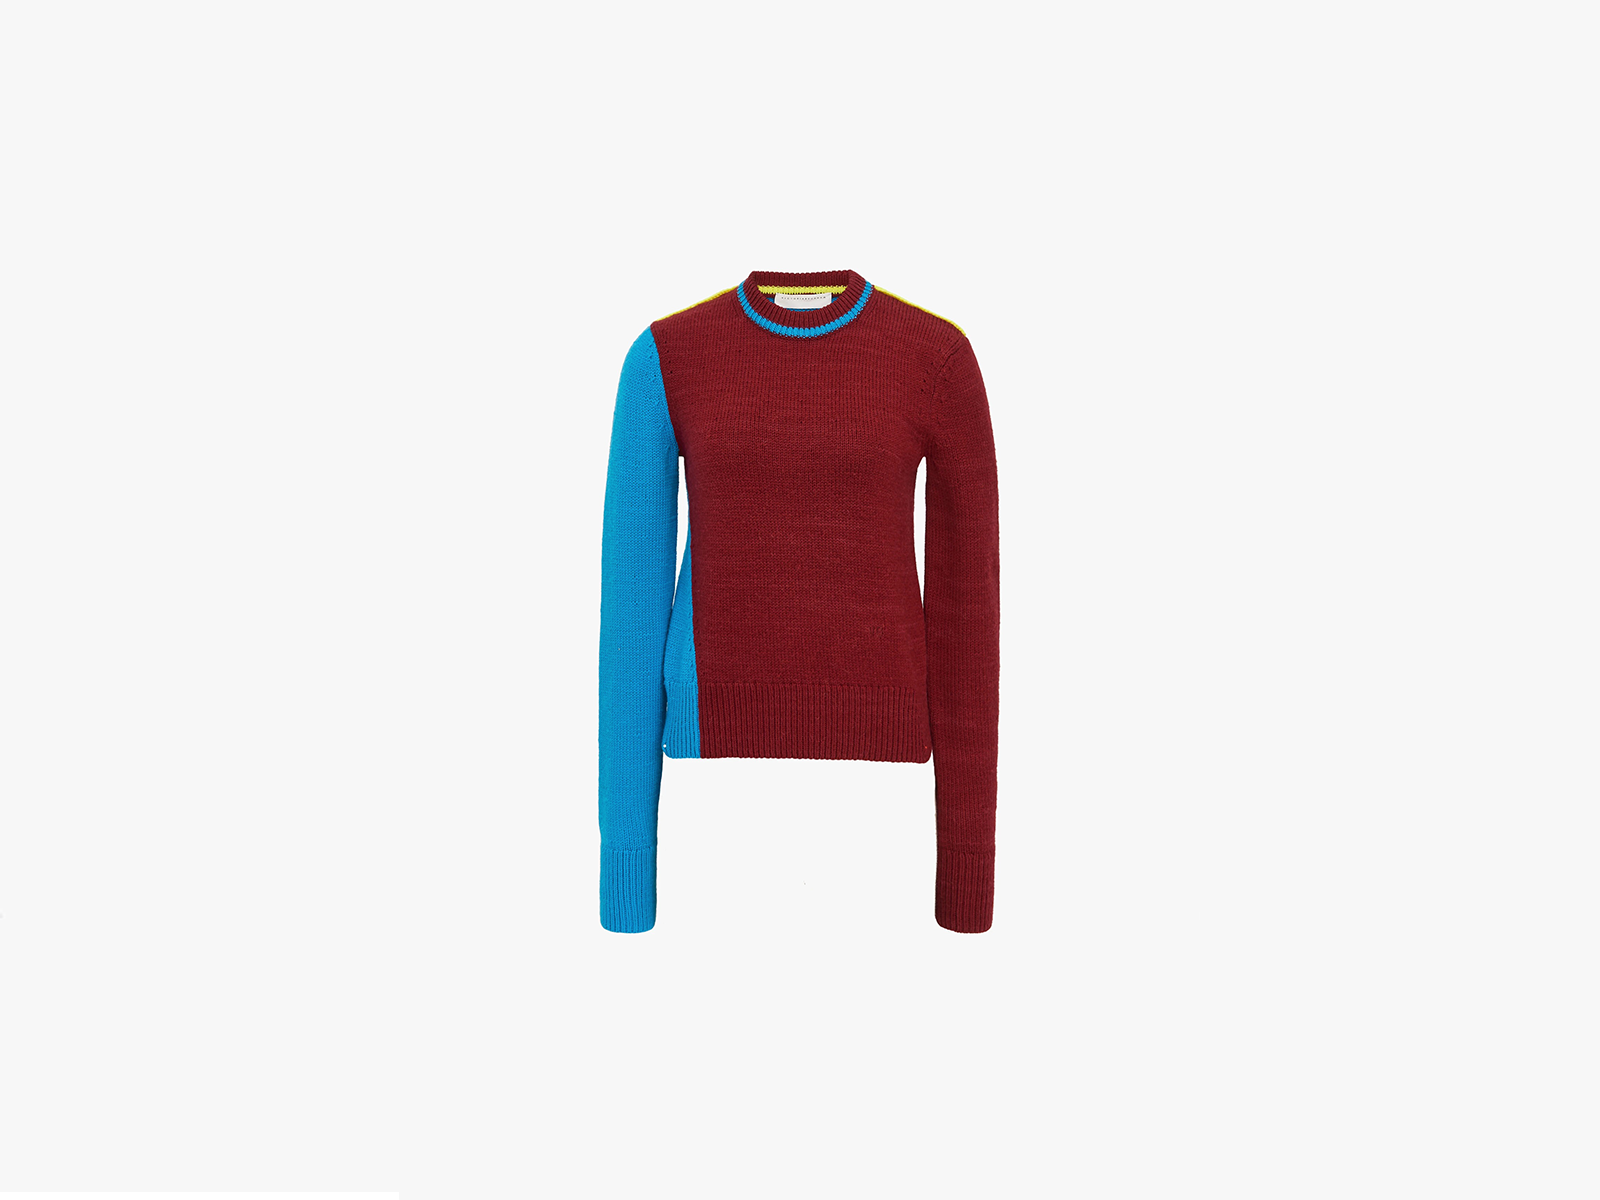 Victoria Beckham Colour Block Cropped Jumper in Red